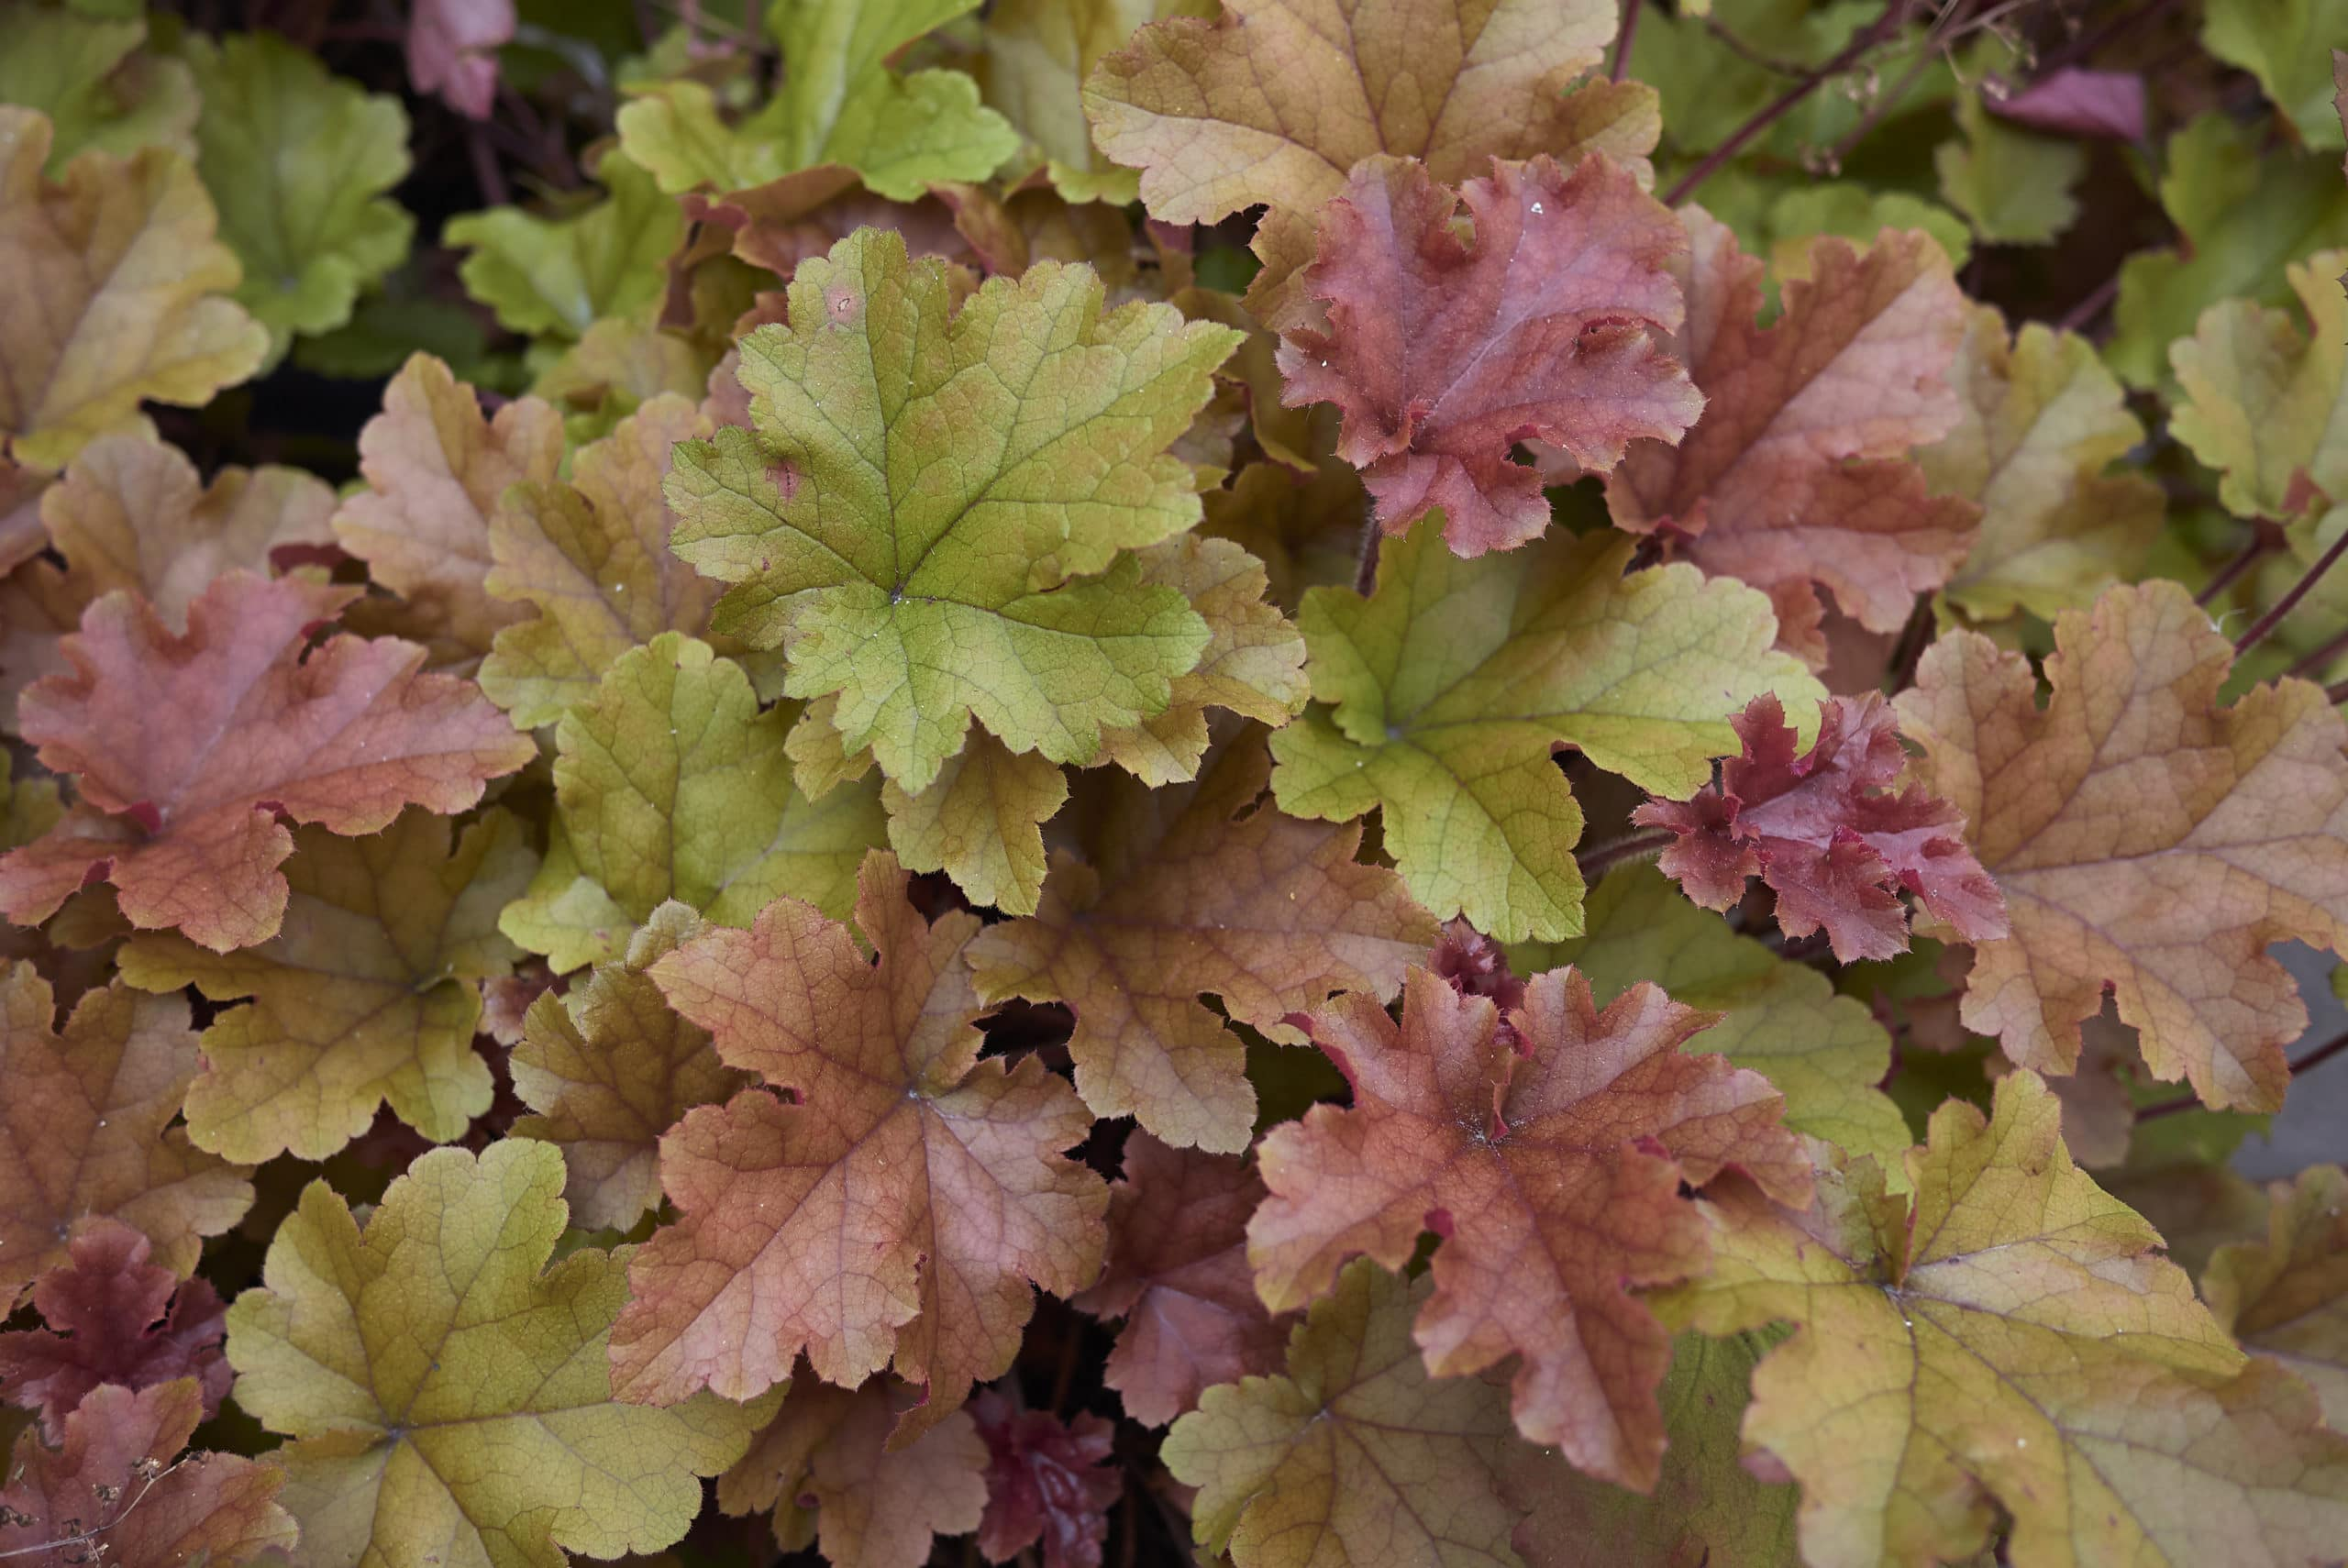 Heuchera foliage with colorful yellow green and burgundy